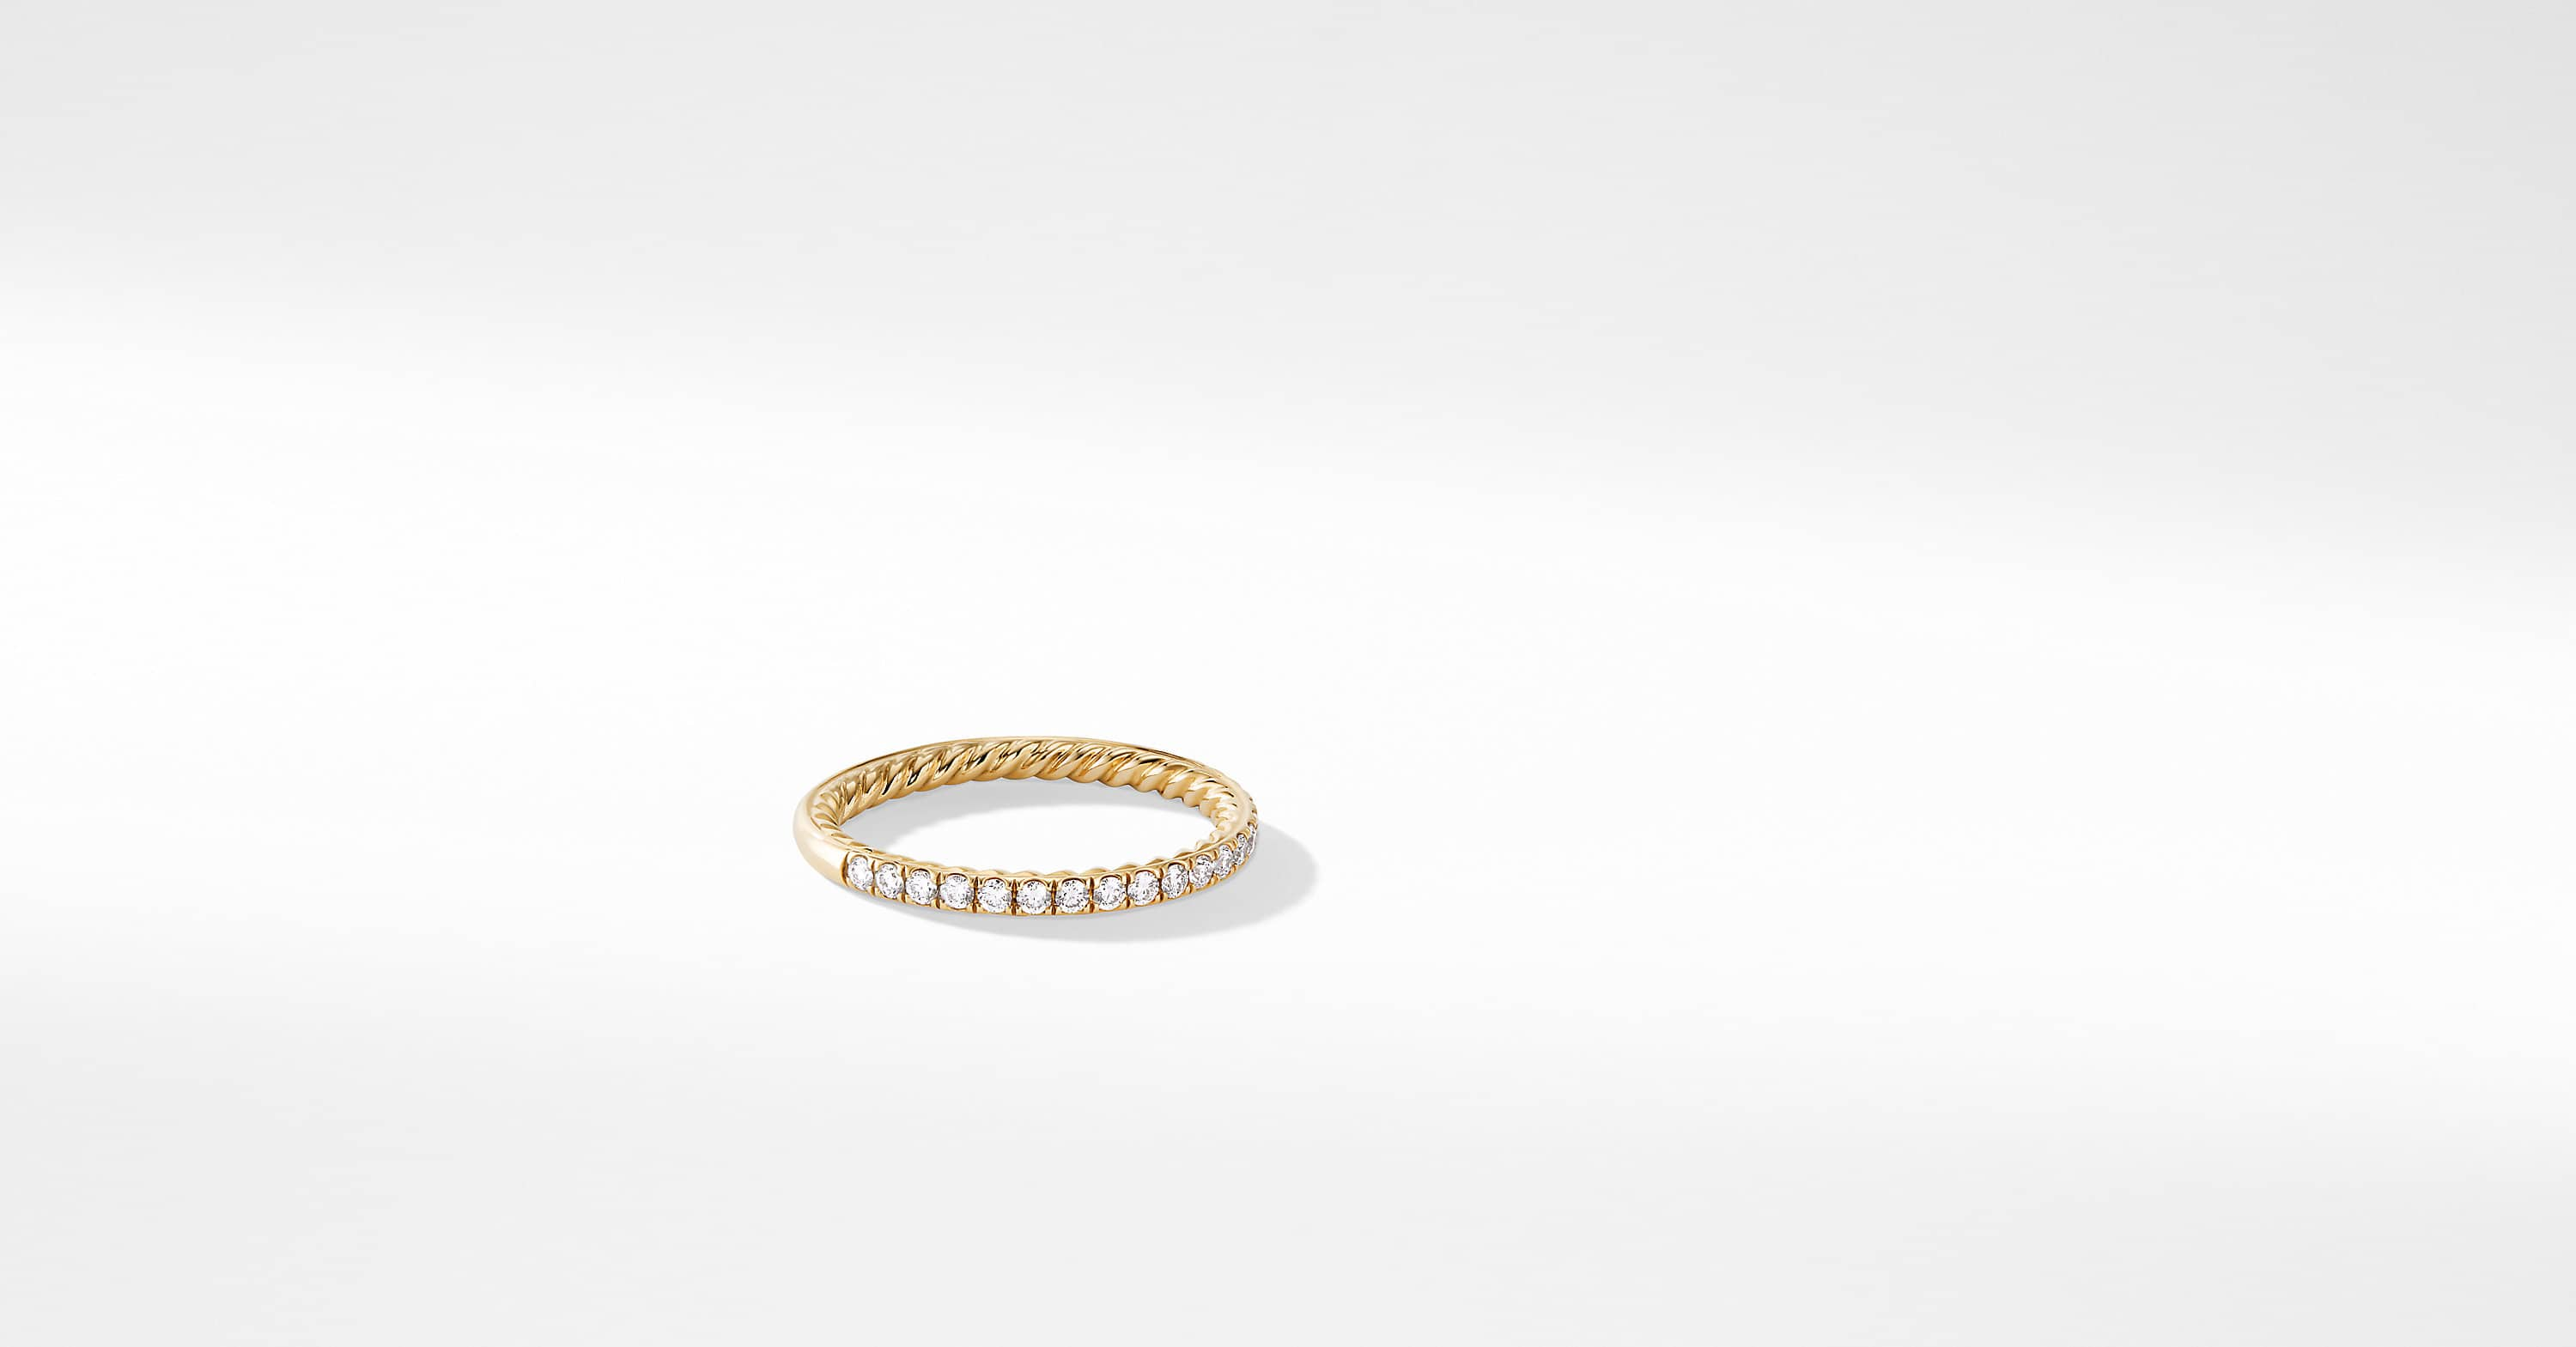 DY Eden Eternity Wedding Band with Diamonds in 18K Gold, 1.85mm